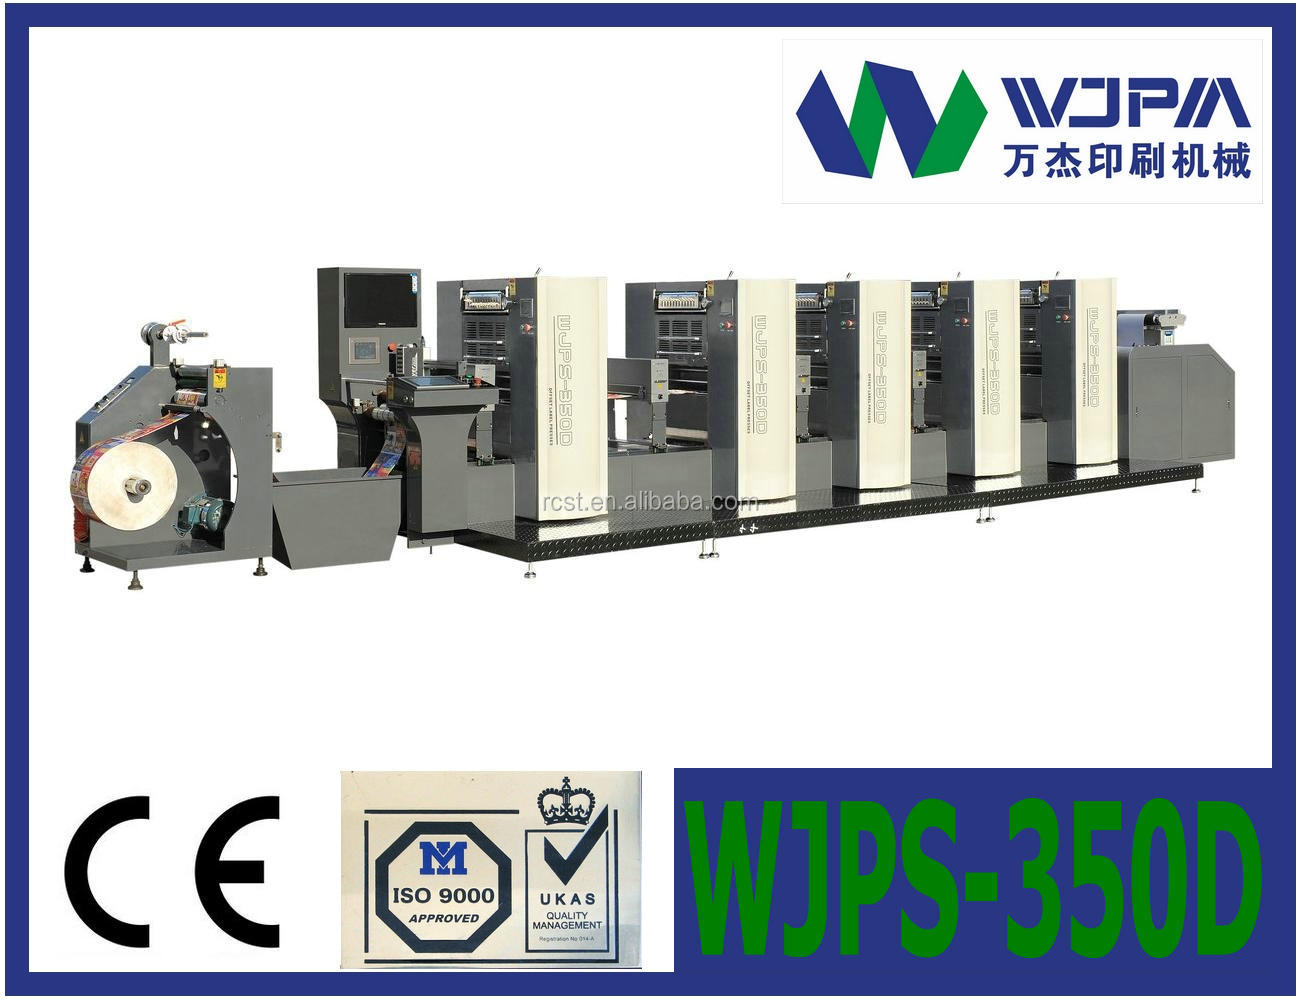 WJBQ 4210 (1-4 colour) Flat-bed Label Label Printing Machine/Mechanical Flat-bed Label printing machine